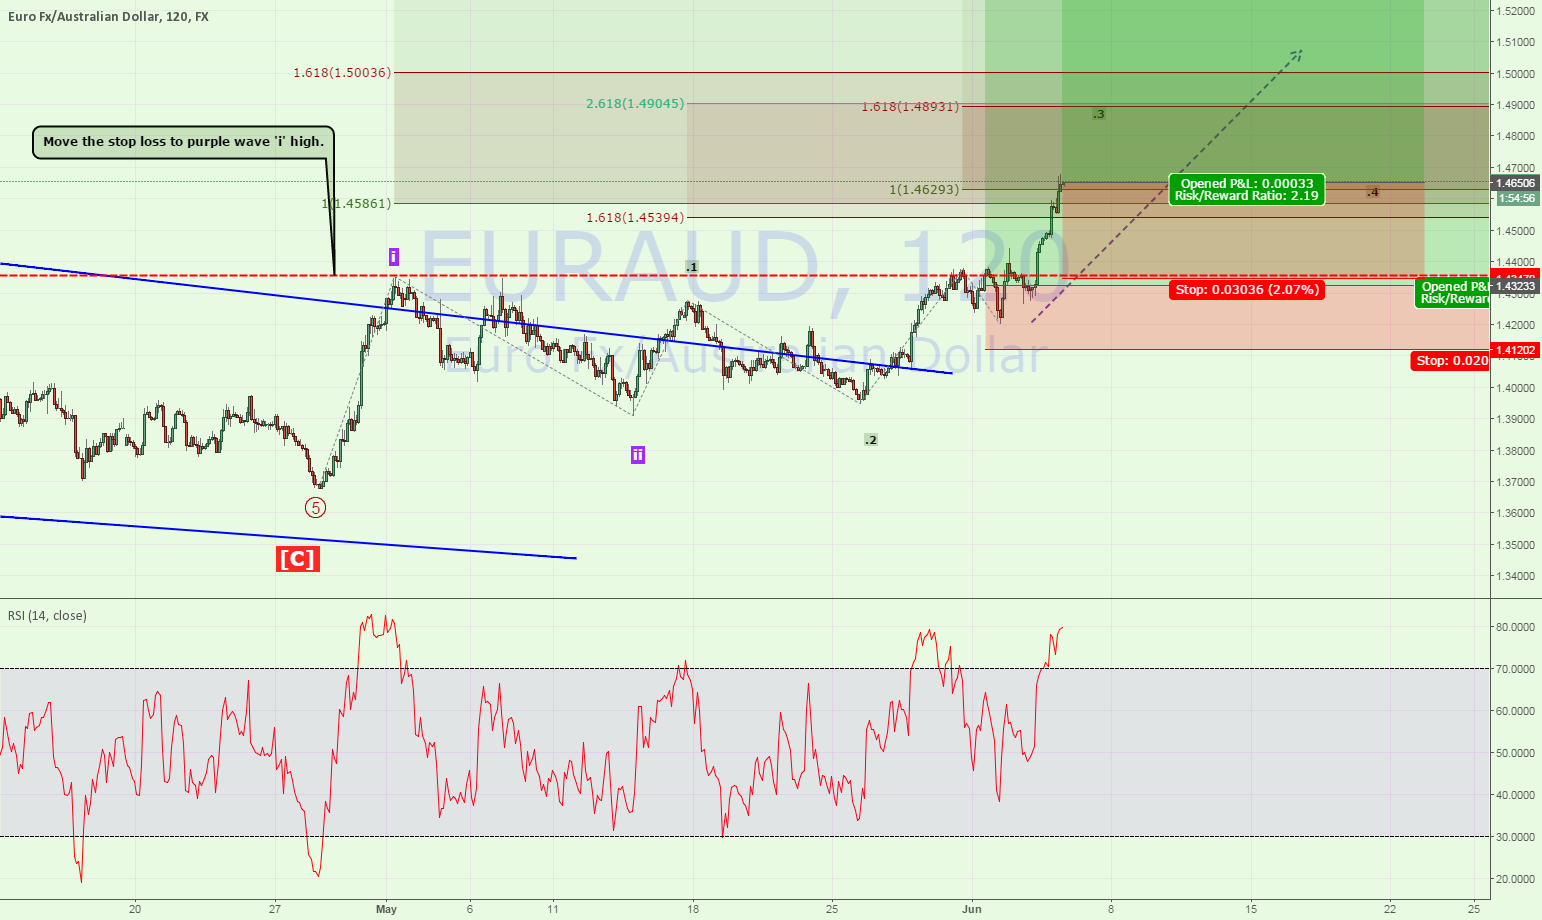 Adding to EUR/AUD Long Position